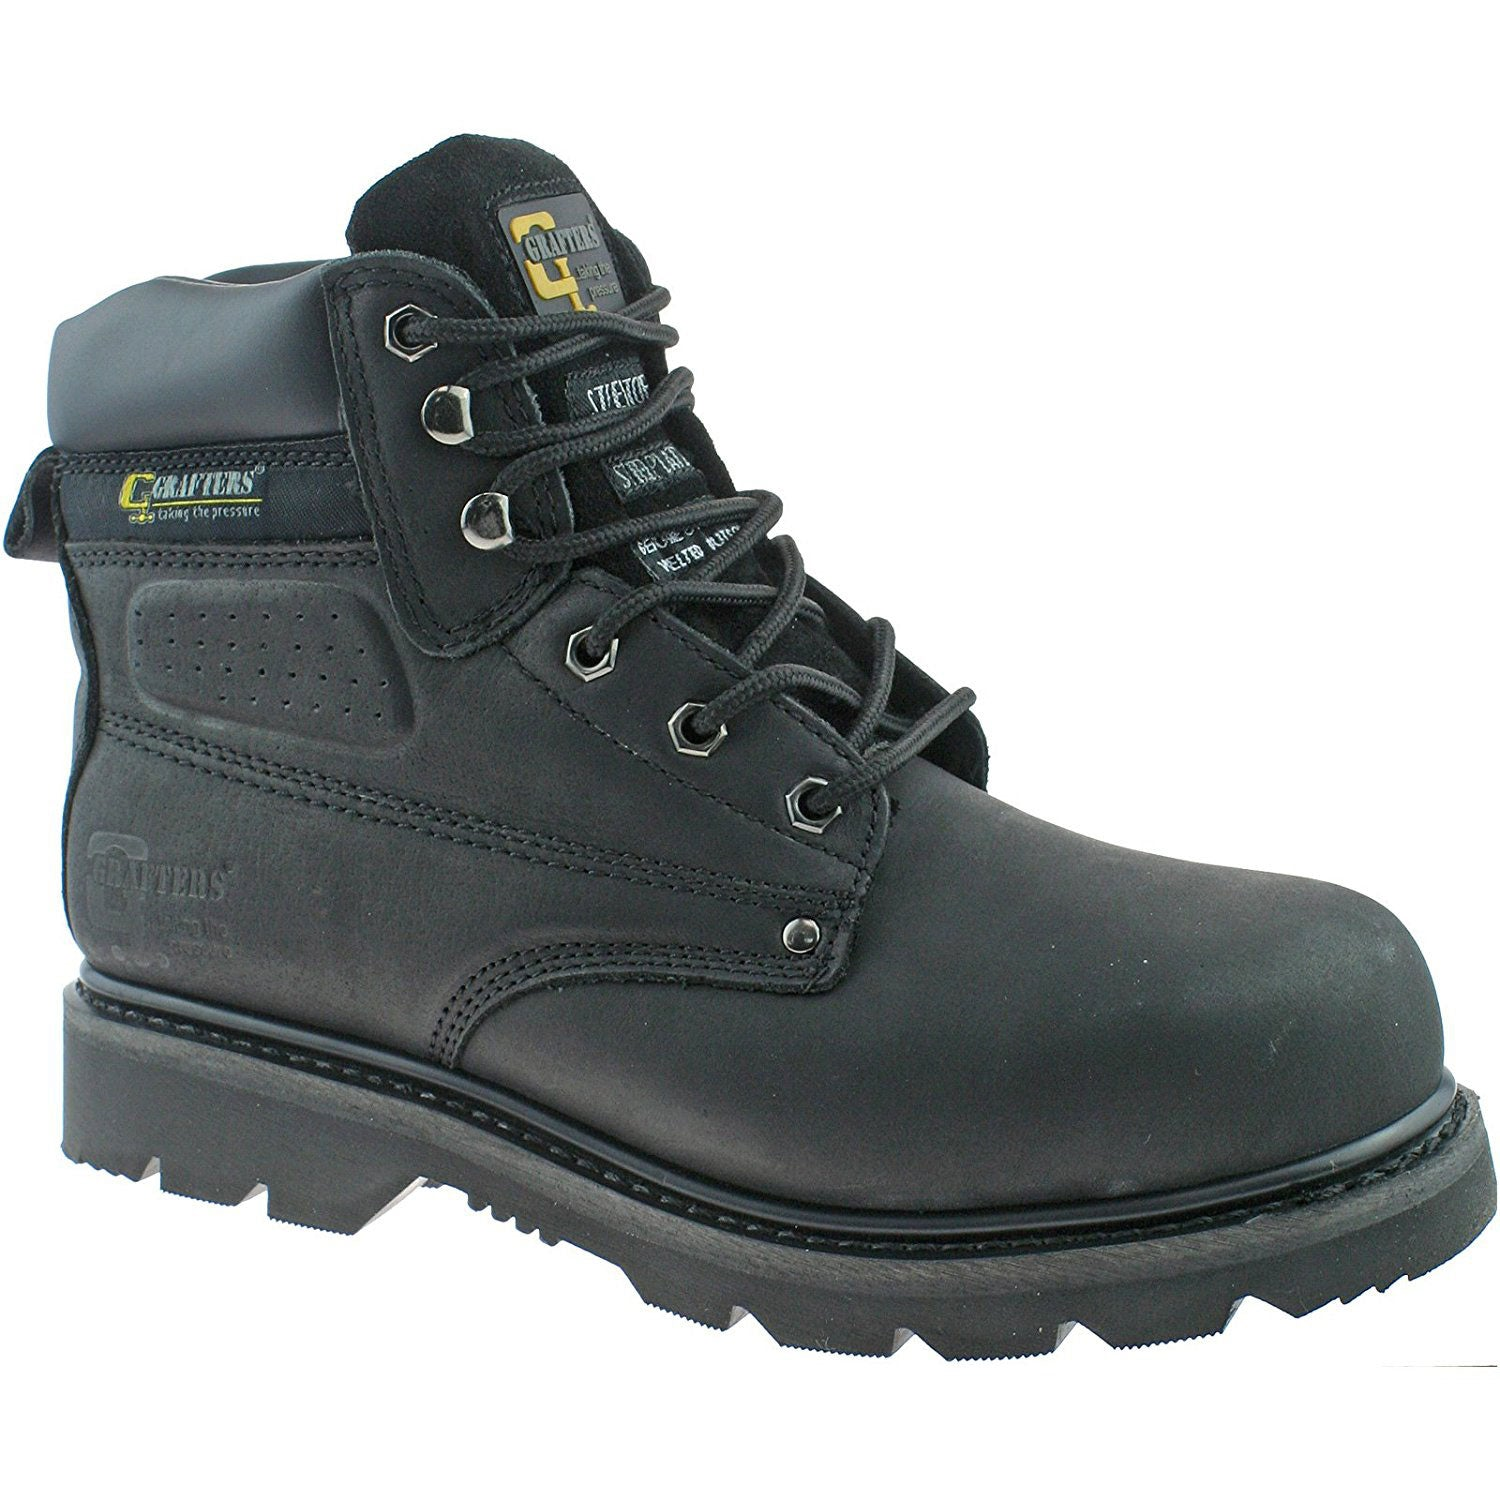 Grafters Gladiator Black leather Safety Toe Cap Boot M538A